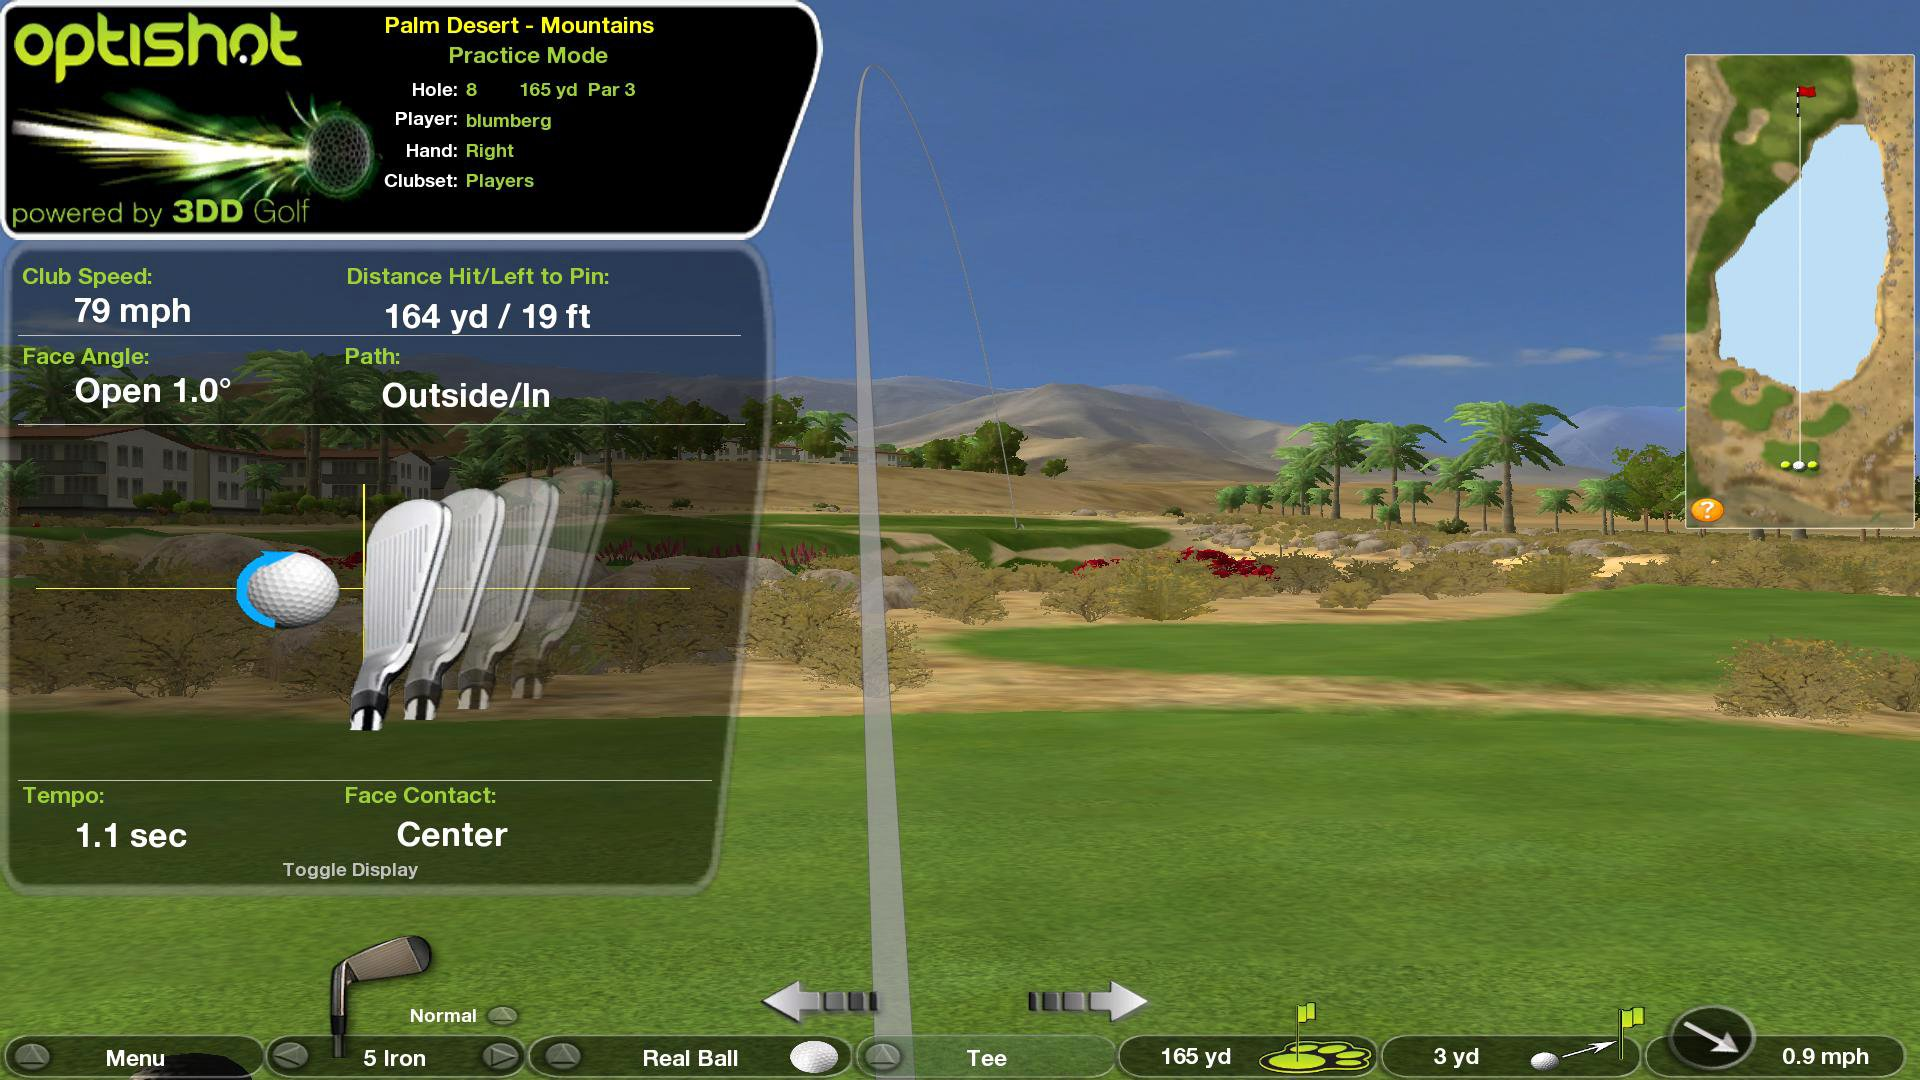 Optishot 2 Players Bundle | Includes Optishot 2, Extra Replacement Turf, and 18 Callaway Practice Balls (Mac & PC Compatible) by Optishot (Image #3)